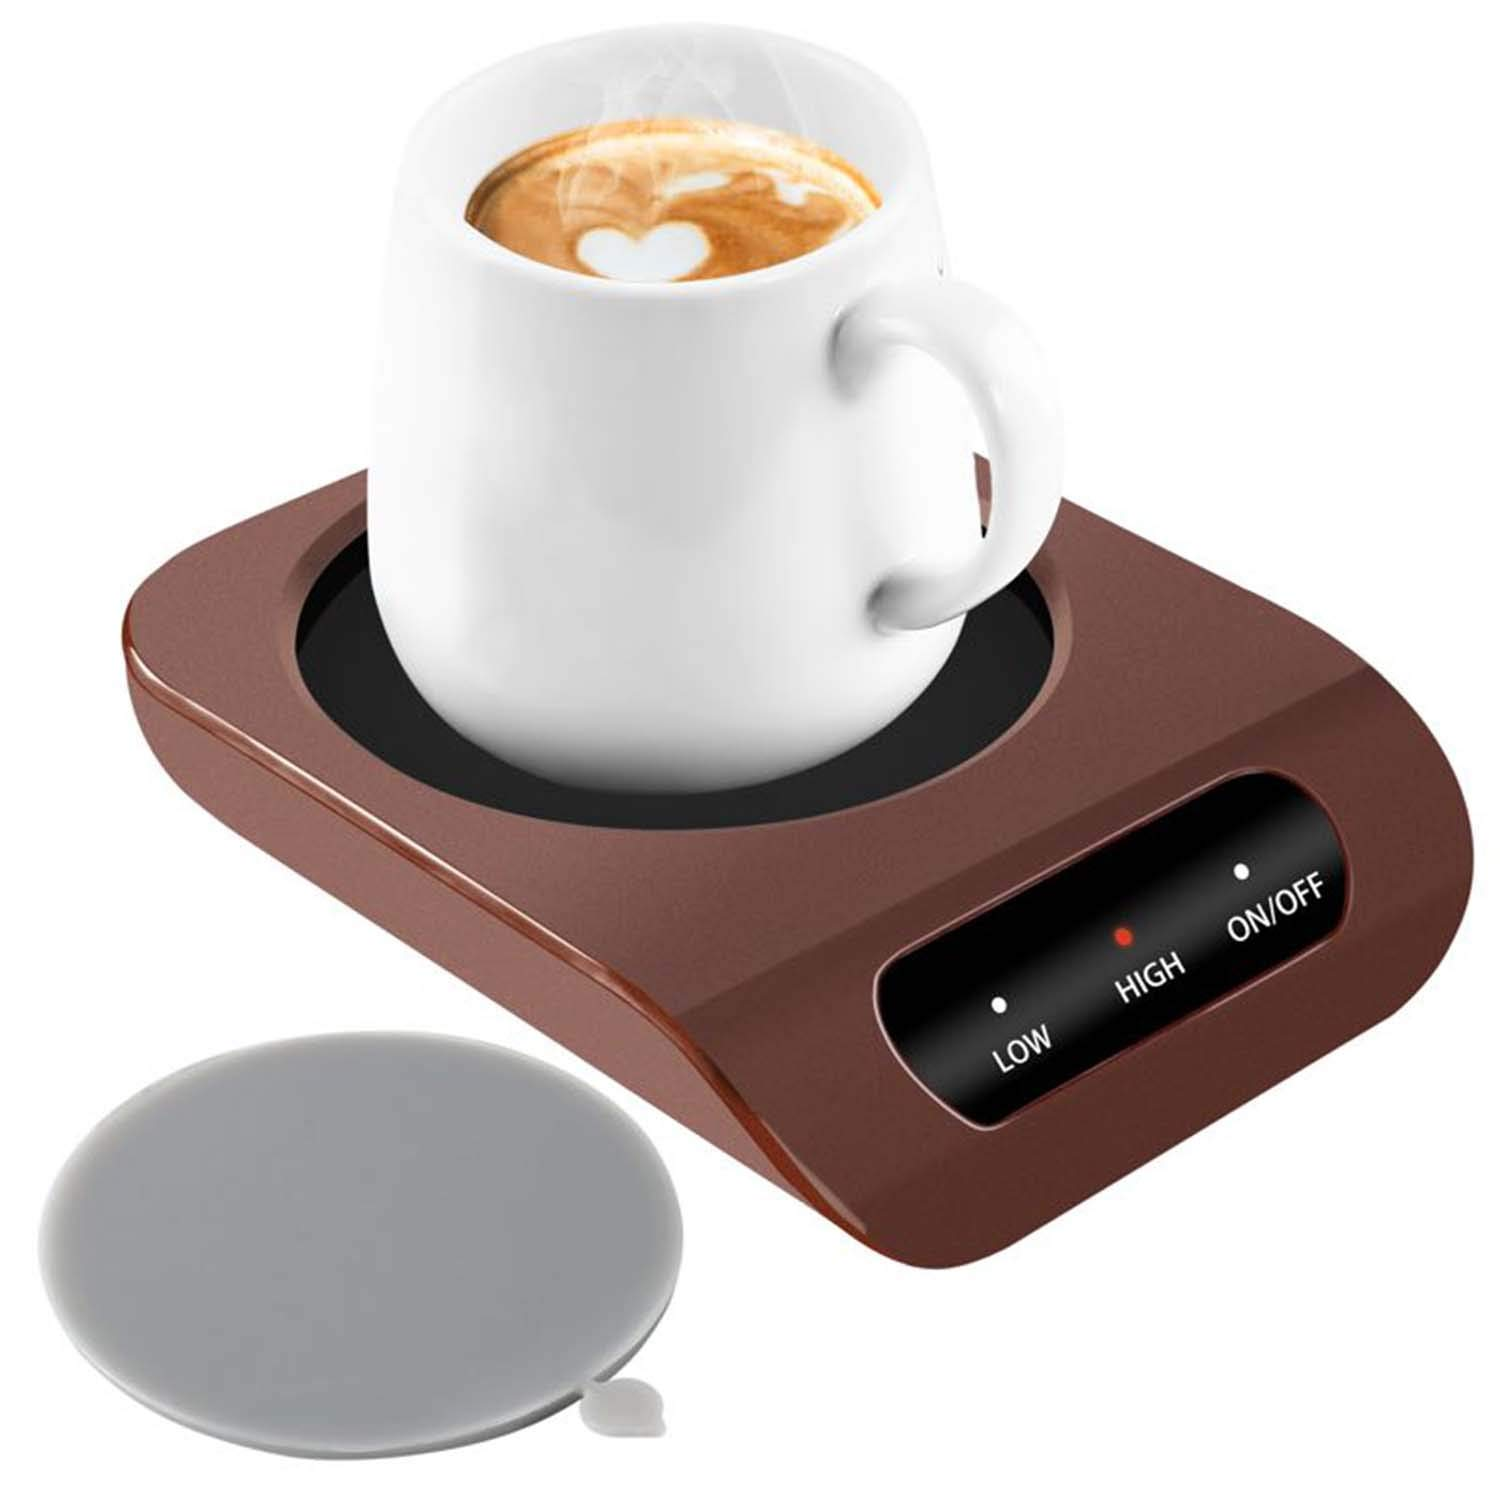 Coffee Mug Warmer - Desktop Beverage Warmer - Electric Cup Warmer Tea Water Cocoa Milk for Office Desk and Home Use 110V 35W Best Gift for Coffee Lovers with Automatic Shut Off Function by KUWAN